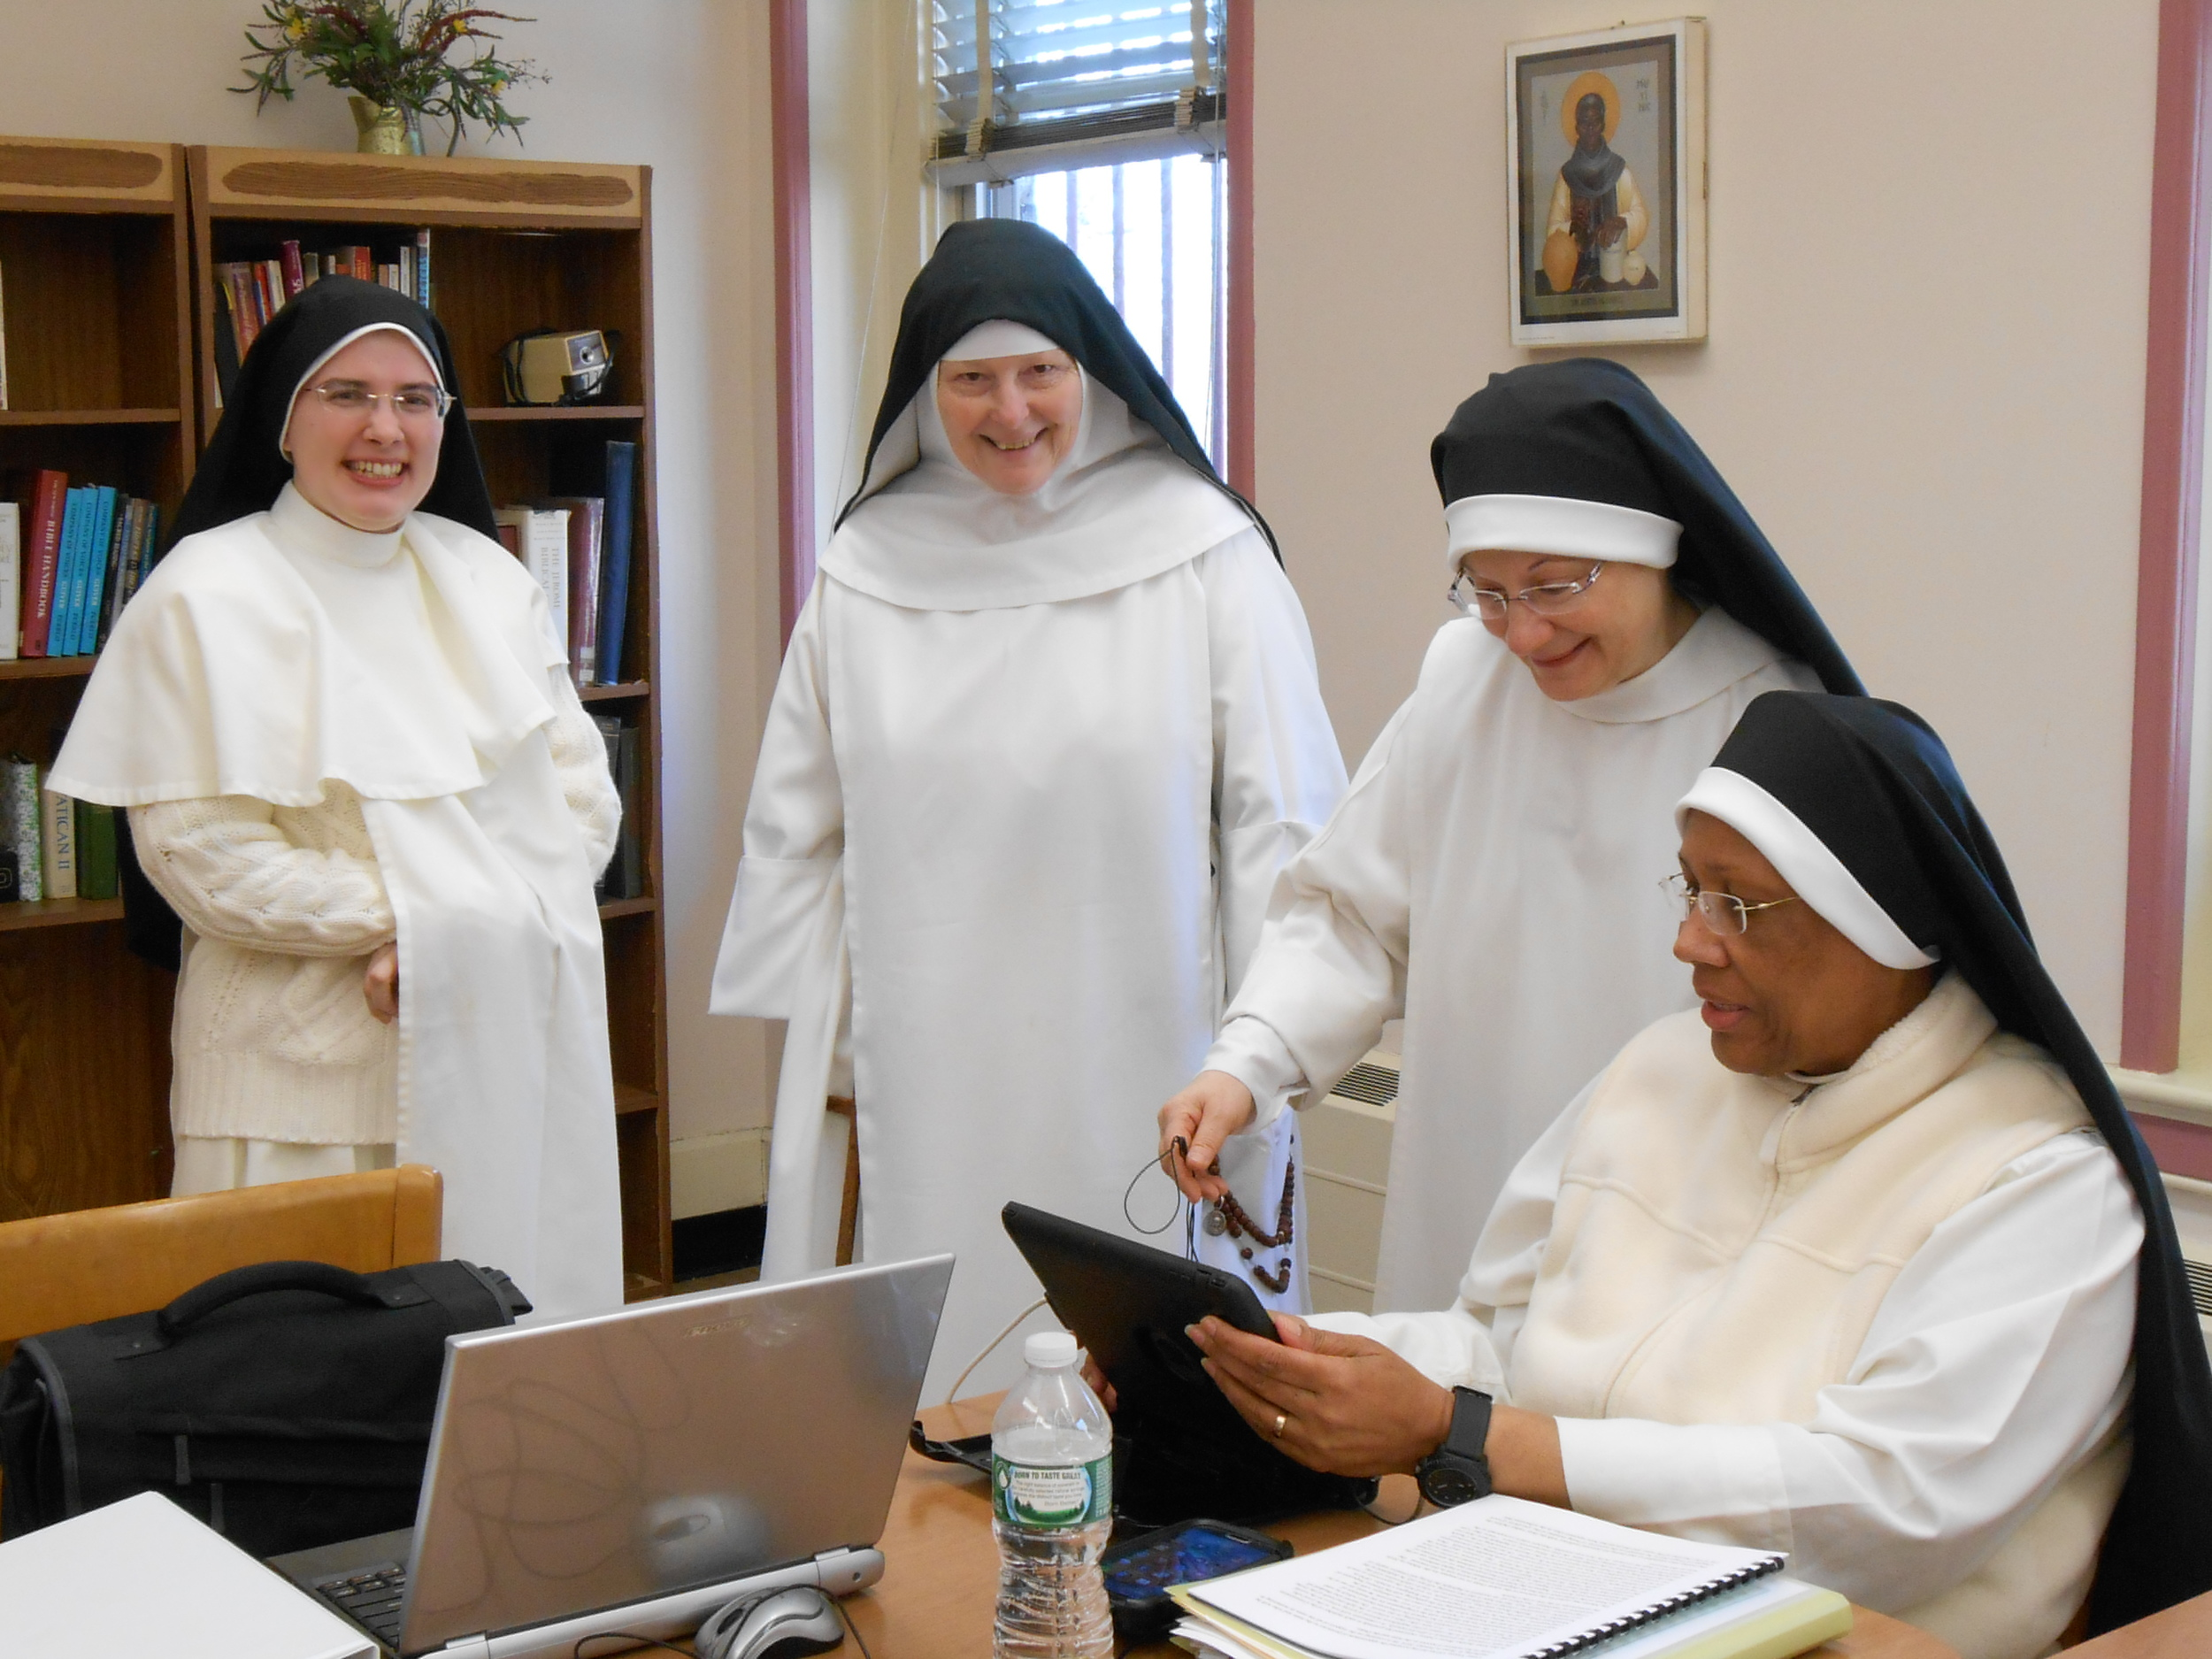 Sr. Anna Marie shares photos during a break.